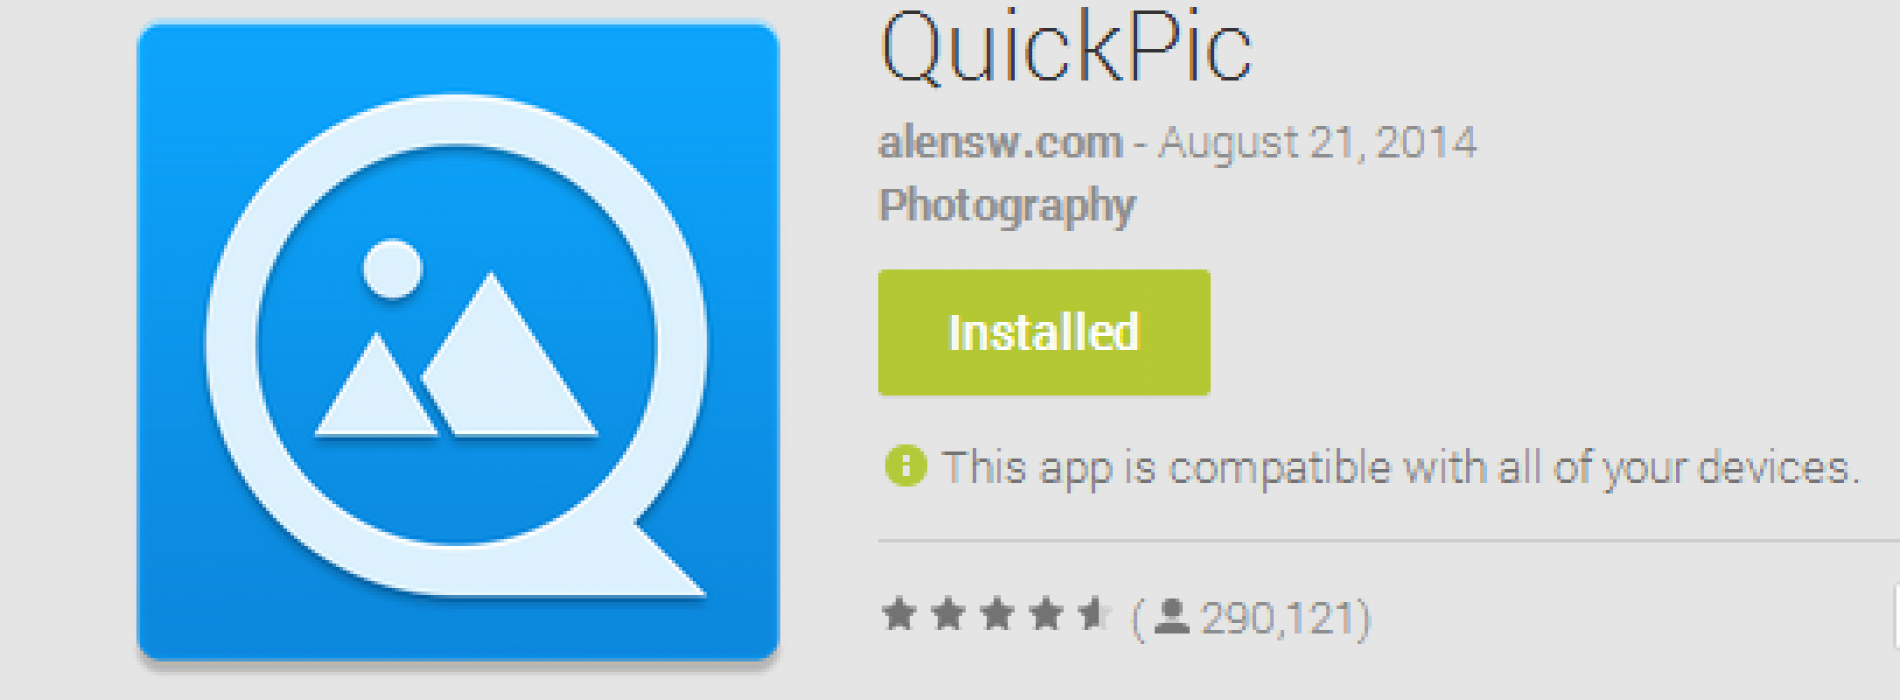 View photos with ease: QuickPic [App of the Day]